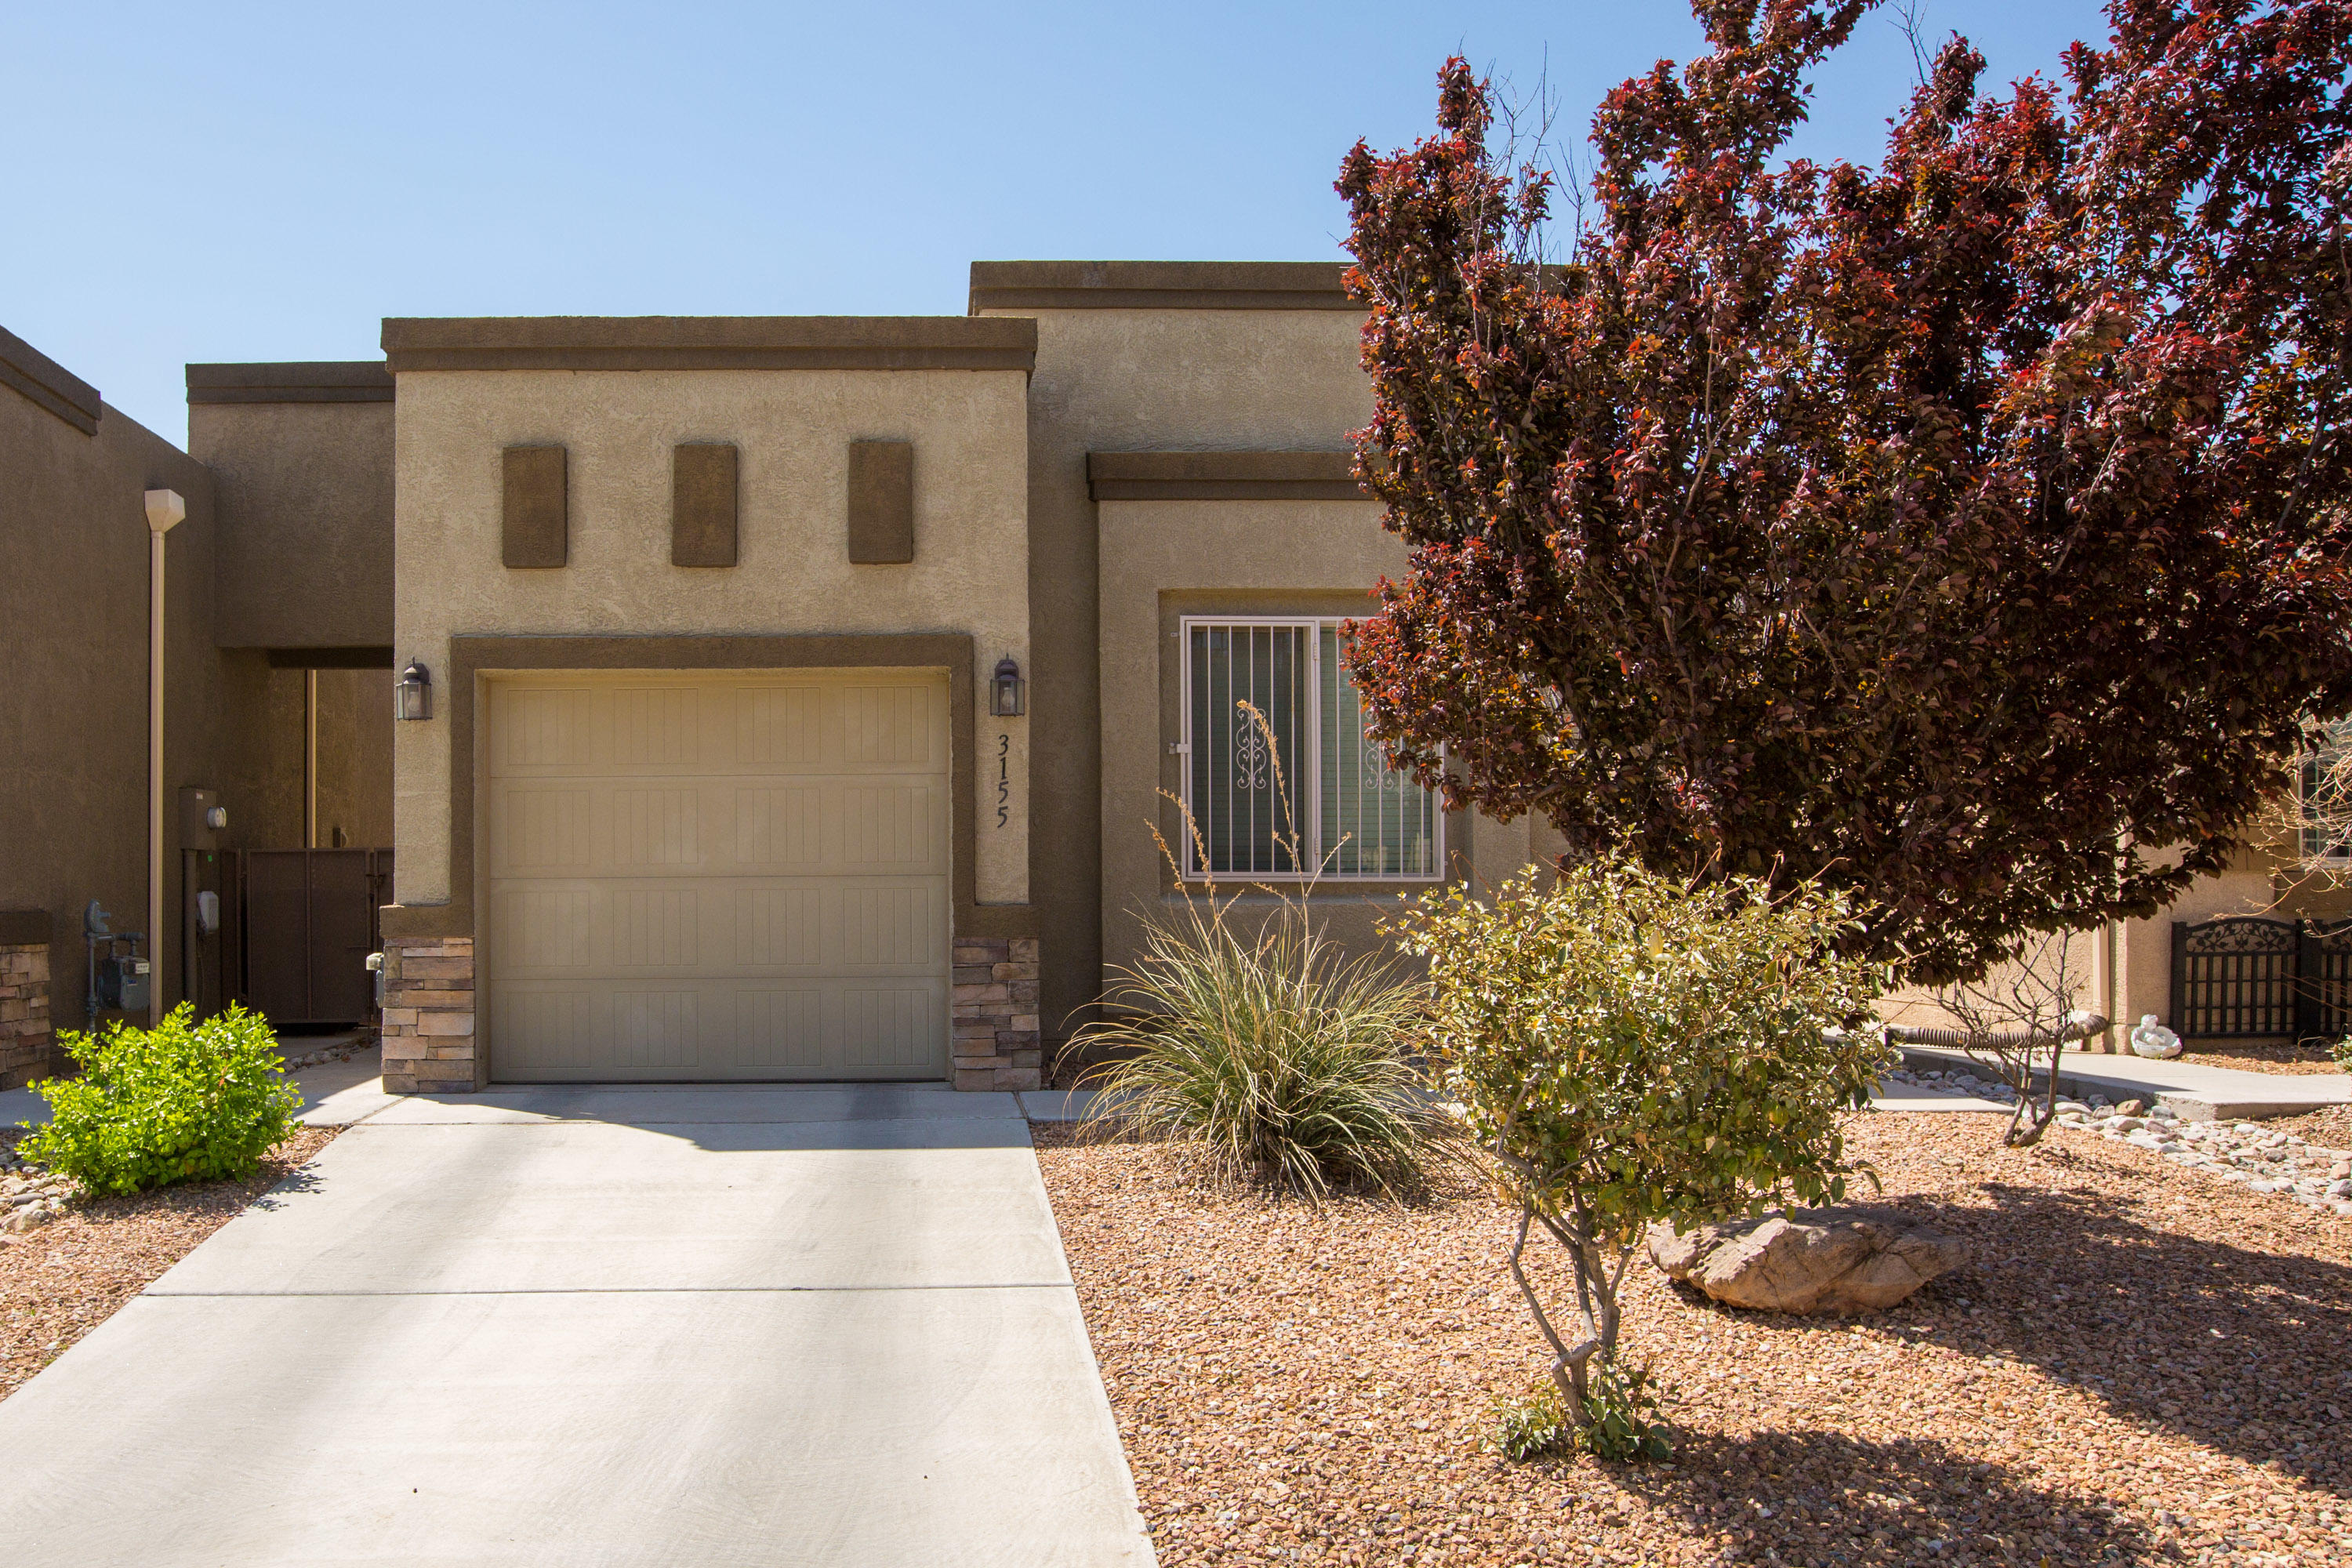 Come view this amazingly cute SW ABQ home in the Sandstone Trails neighborhood.  This one owner DR Horton home comes with a tank less water heater, refrigerated air, as well as all appliances.  This home is as move in ready as you can including a built in deck area in the backyard.  This home won't last long!